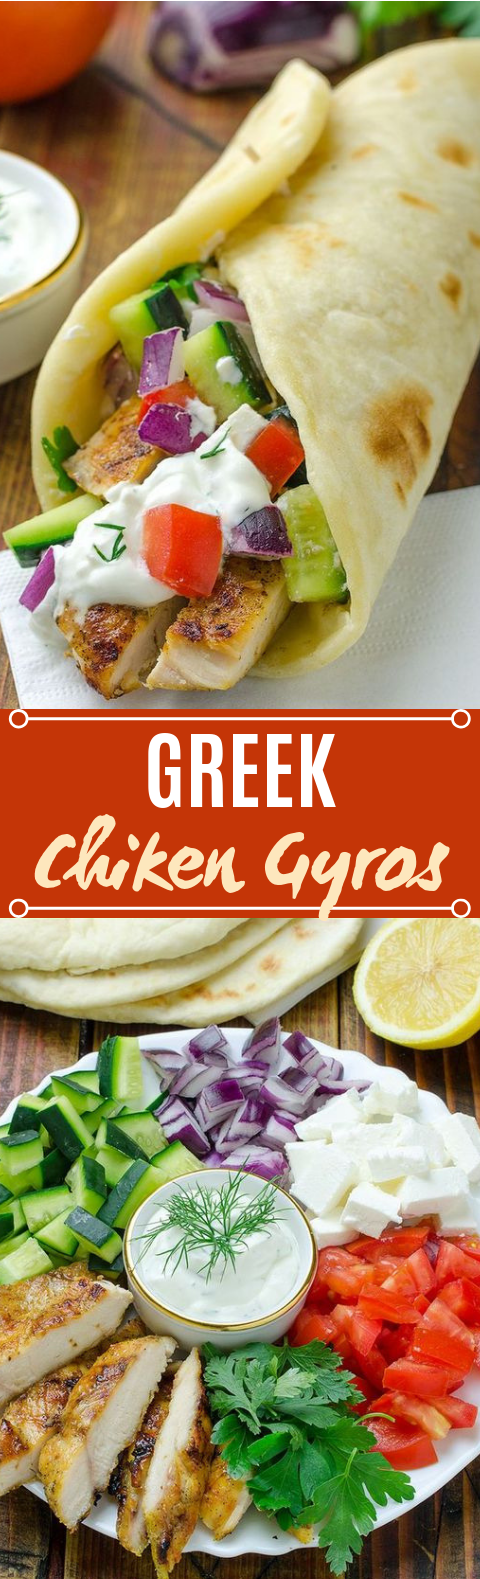 Greek Chicken Gyros with Tzaziki Sauce and Pita Flatbread #wraps #lunch